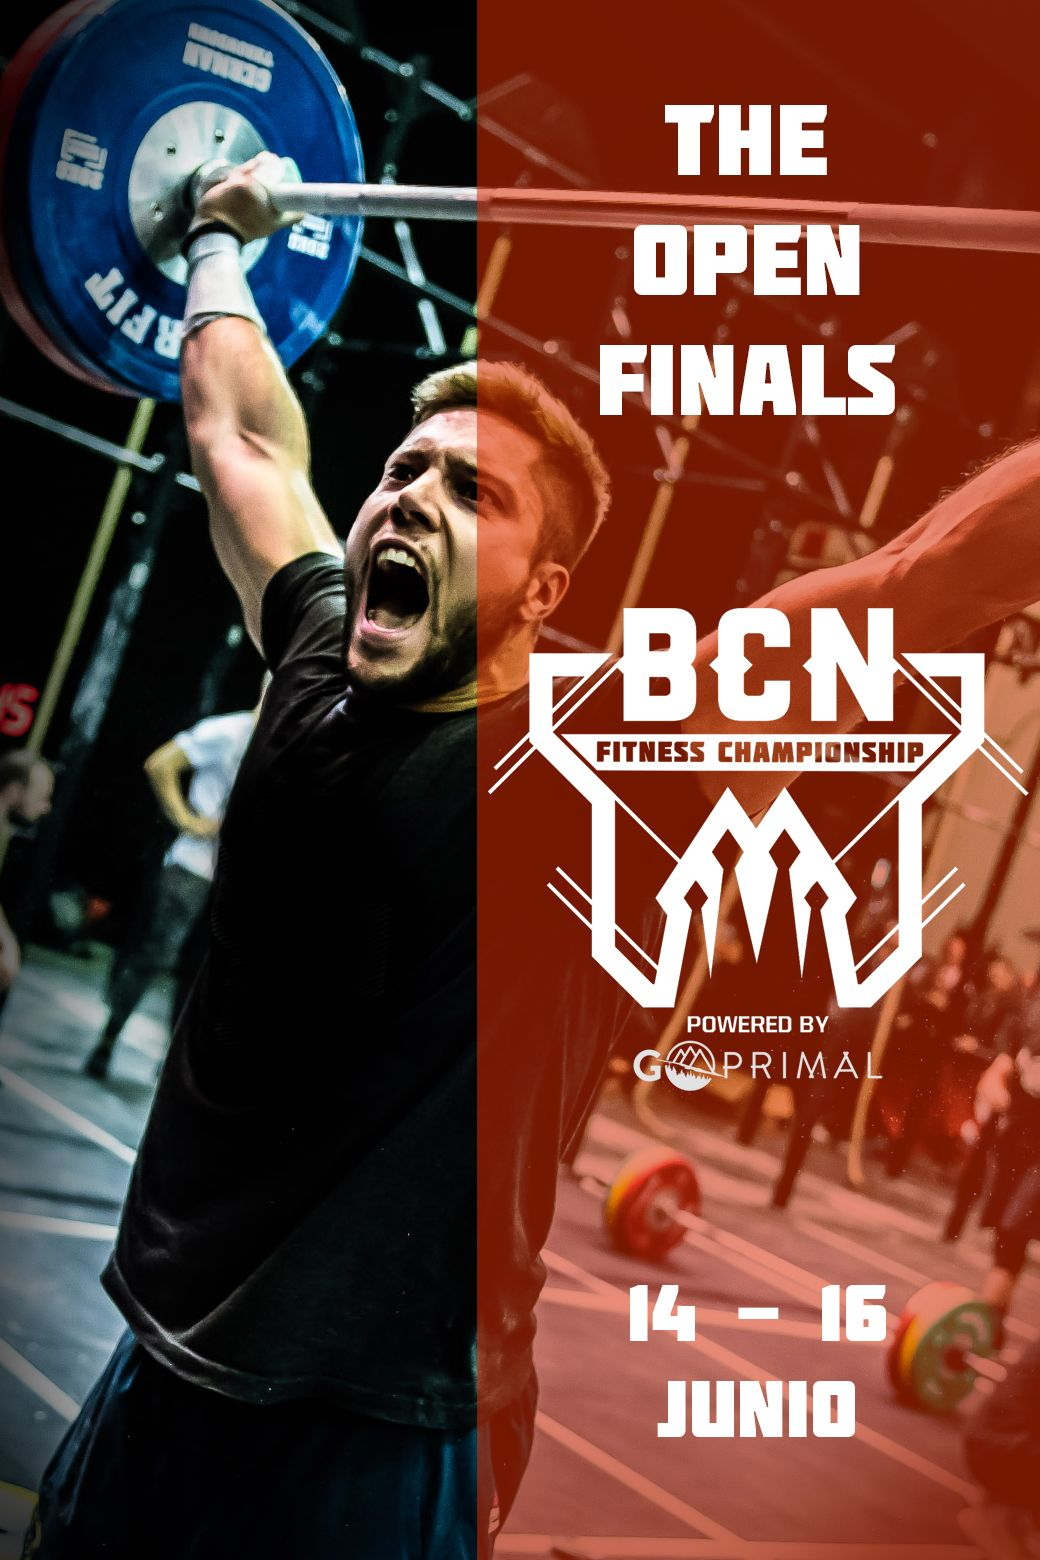 Barcelona Fitness Championship FASE FINAL